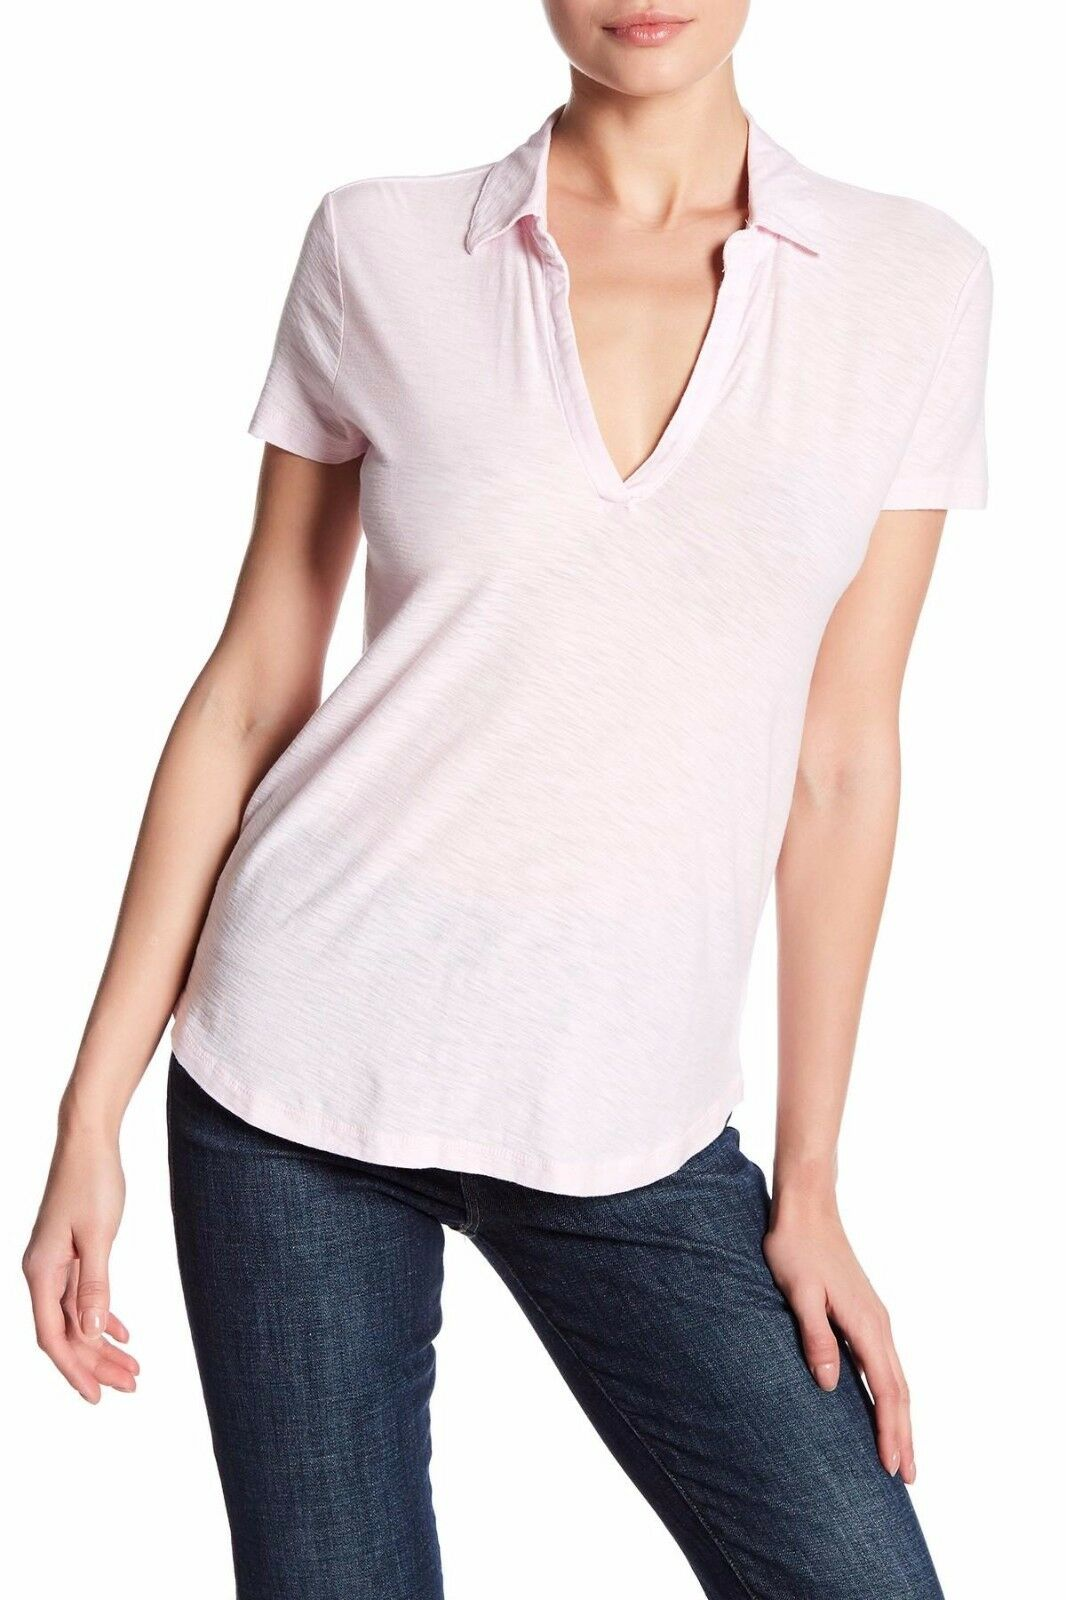 NWT JAMES PERSE Sz2(M) CURVED HEM SHORT SLEEVE POLO JERSEY TOP RosaWATER